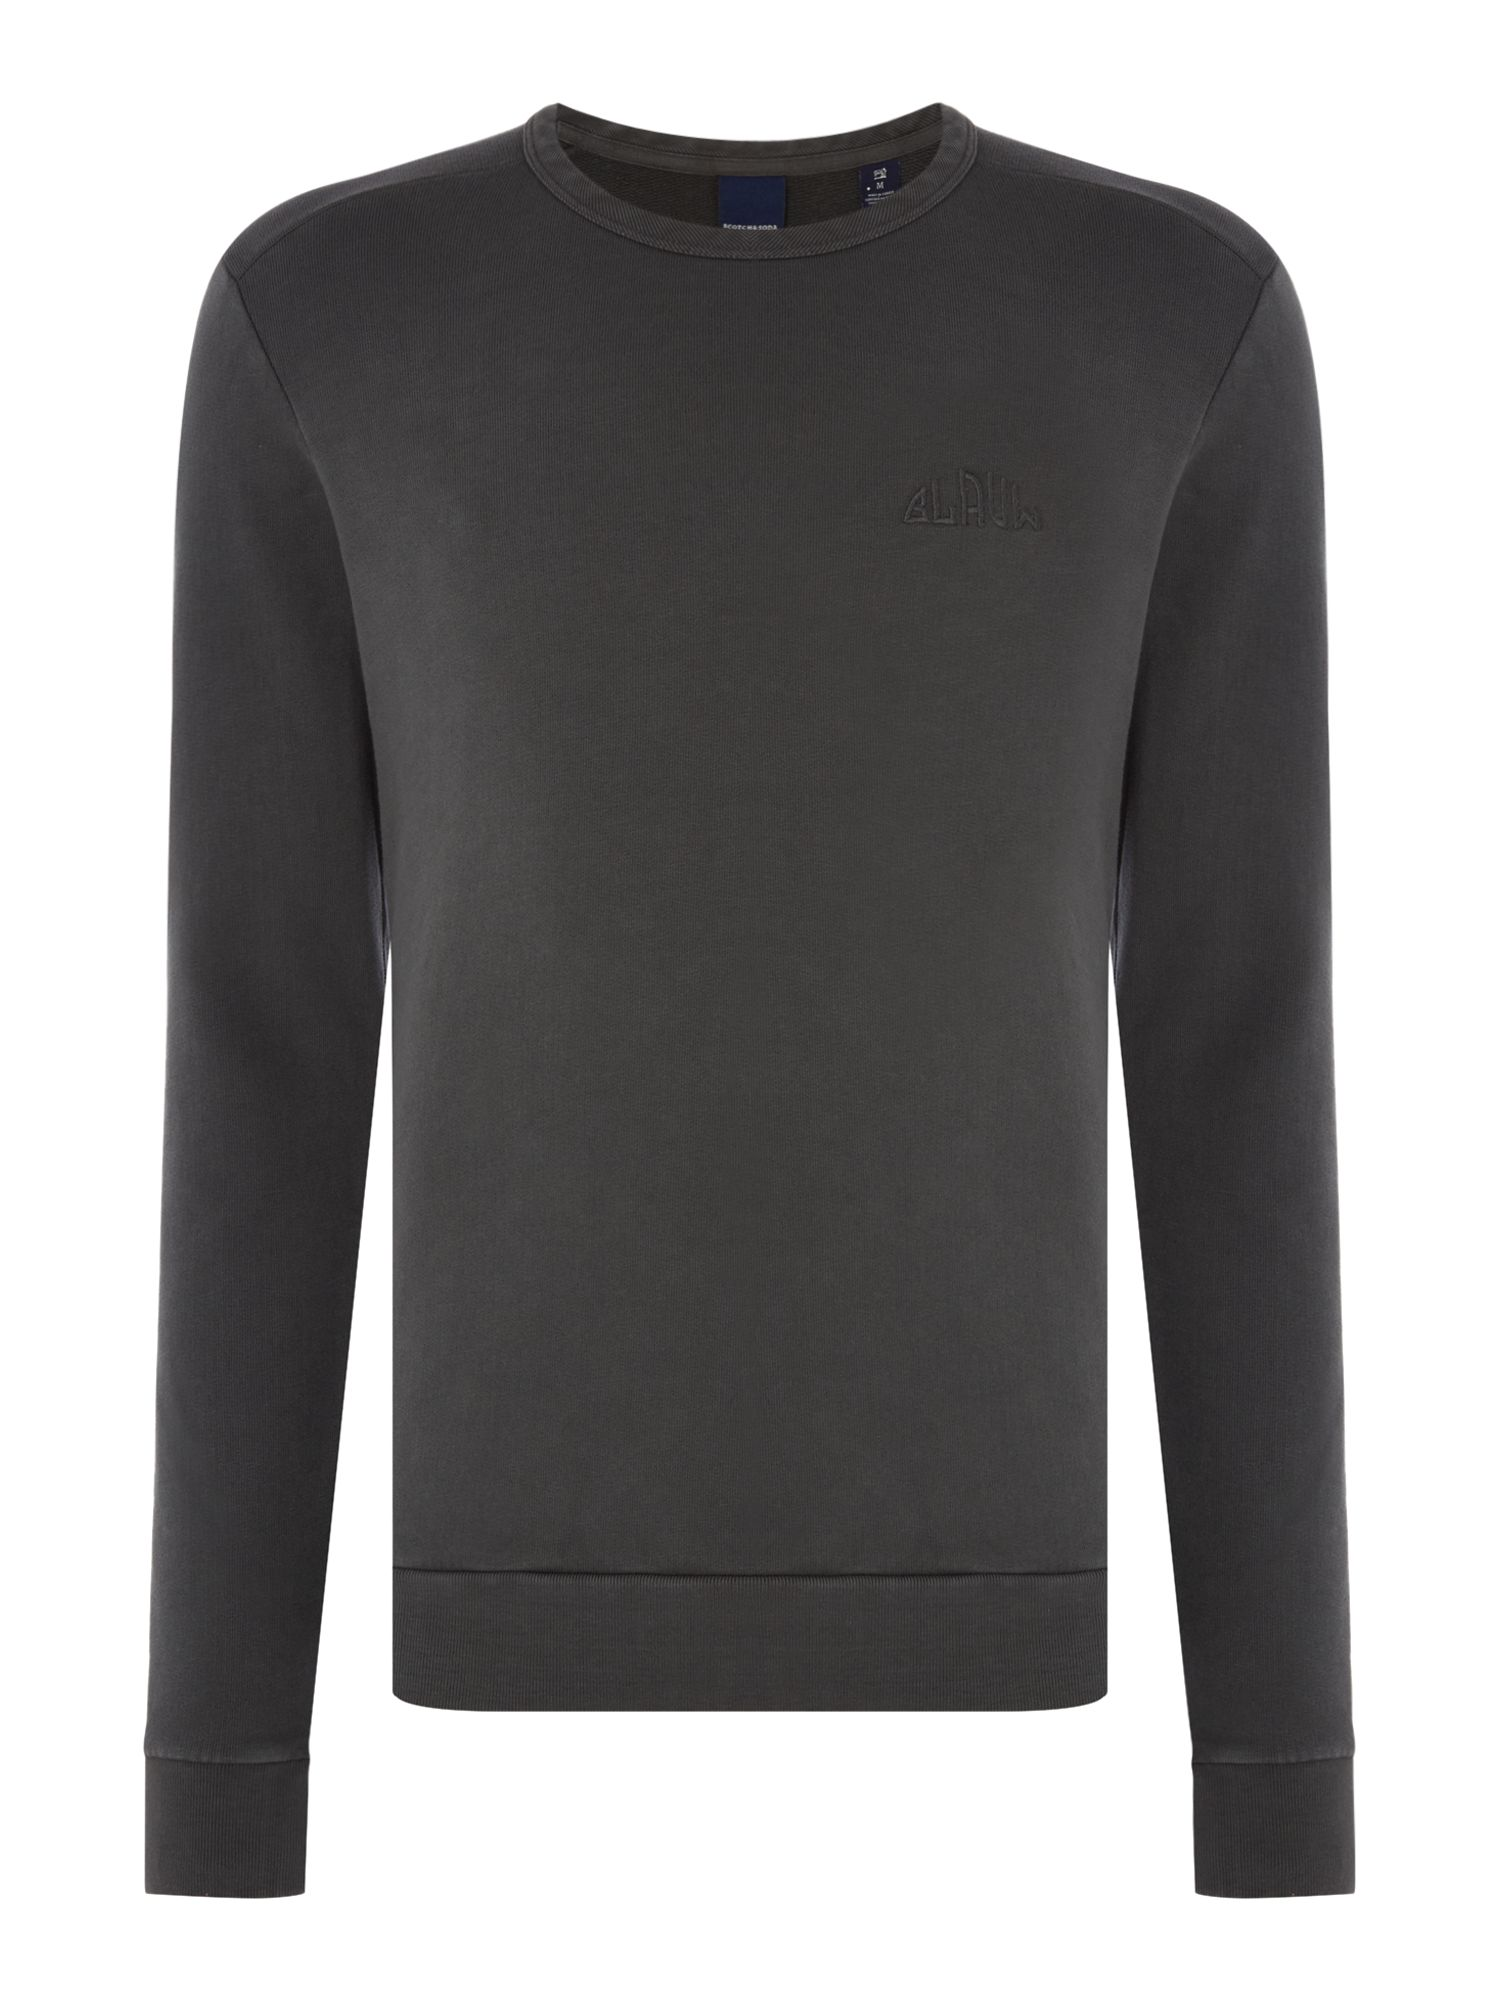 Men's Scotch & Soda Garment Dyed Sweatshirt, Black